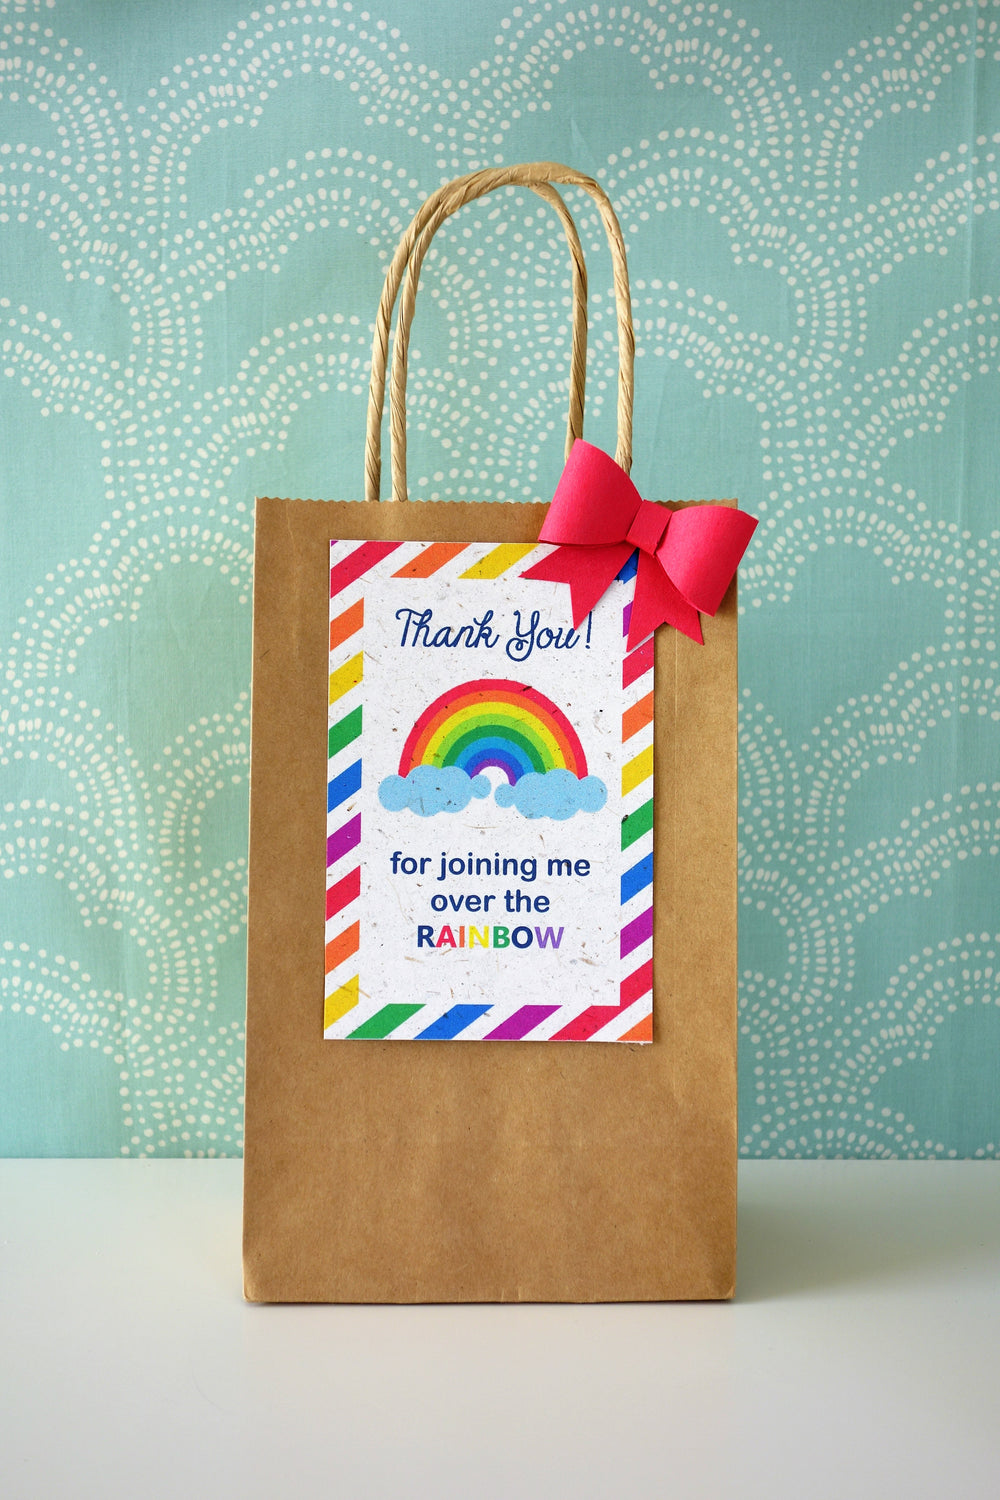 TG022980 Luggage Tags Pack of 10 /'Rainbow/' Gift